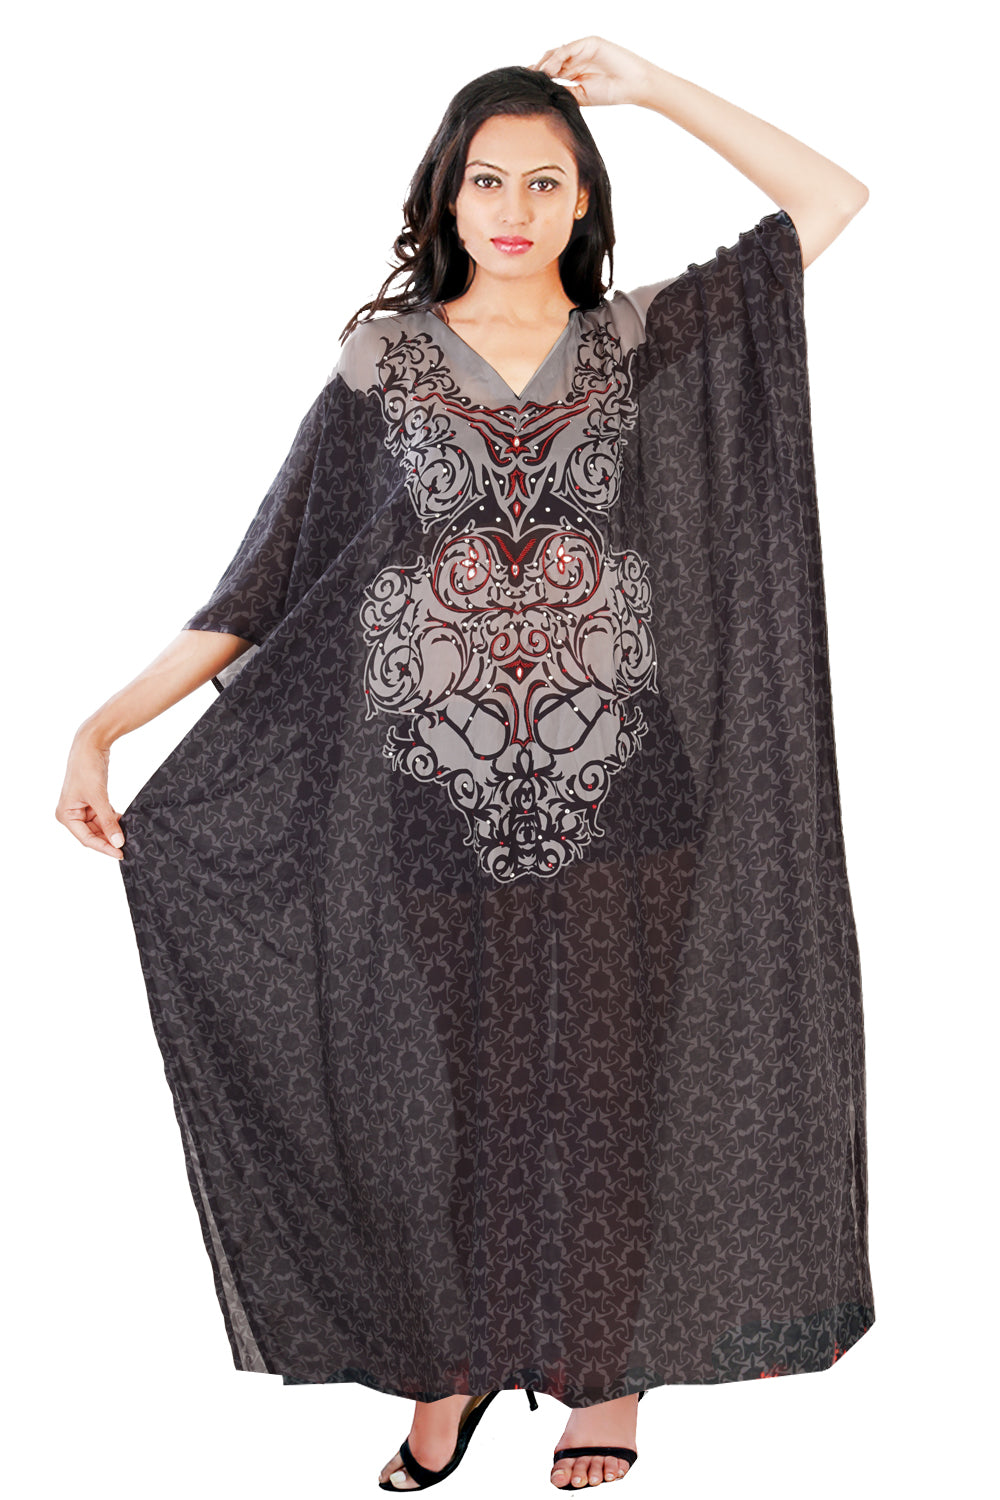 Beach cover up kaftan Bikini kaftan Print Kaftan Evening kaftan Plus size kaftan Hand made kaftan - Silk kaftan